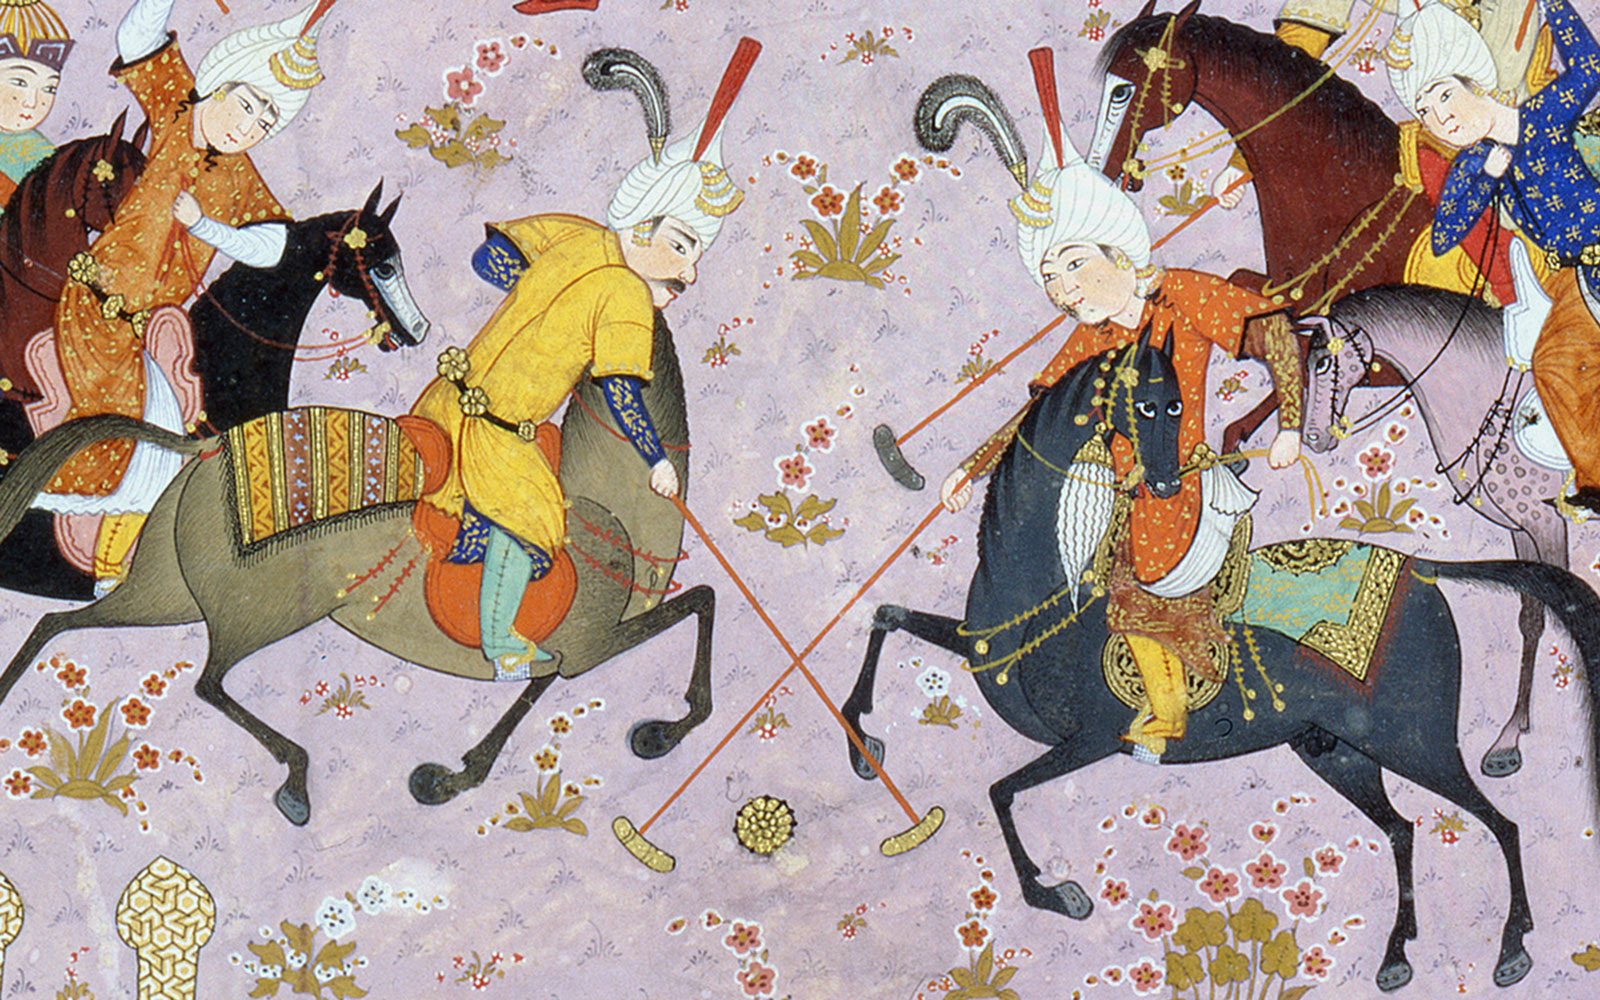 The game of polo © Gulbenkian Museum